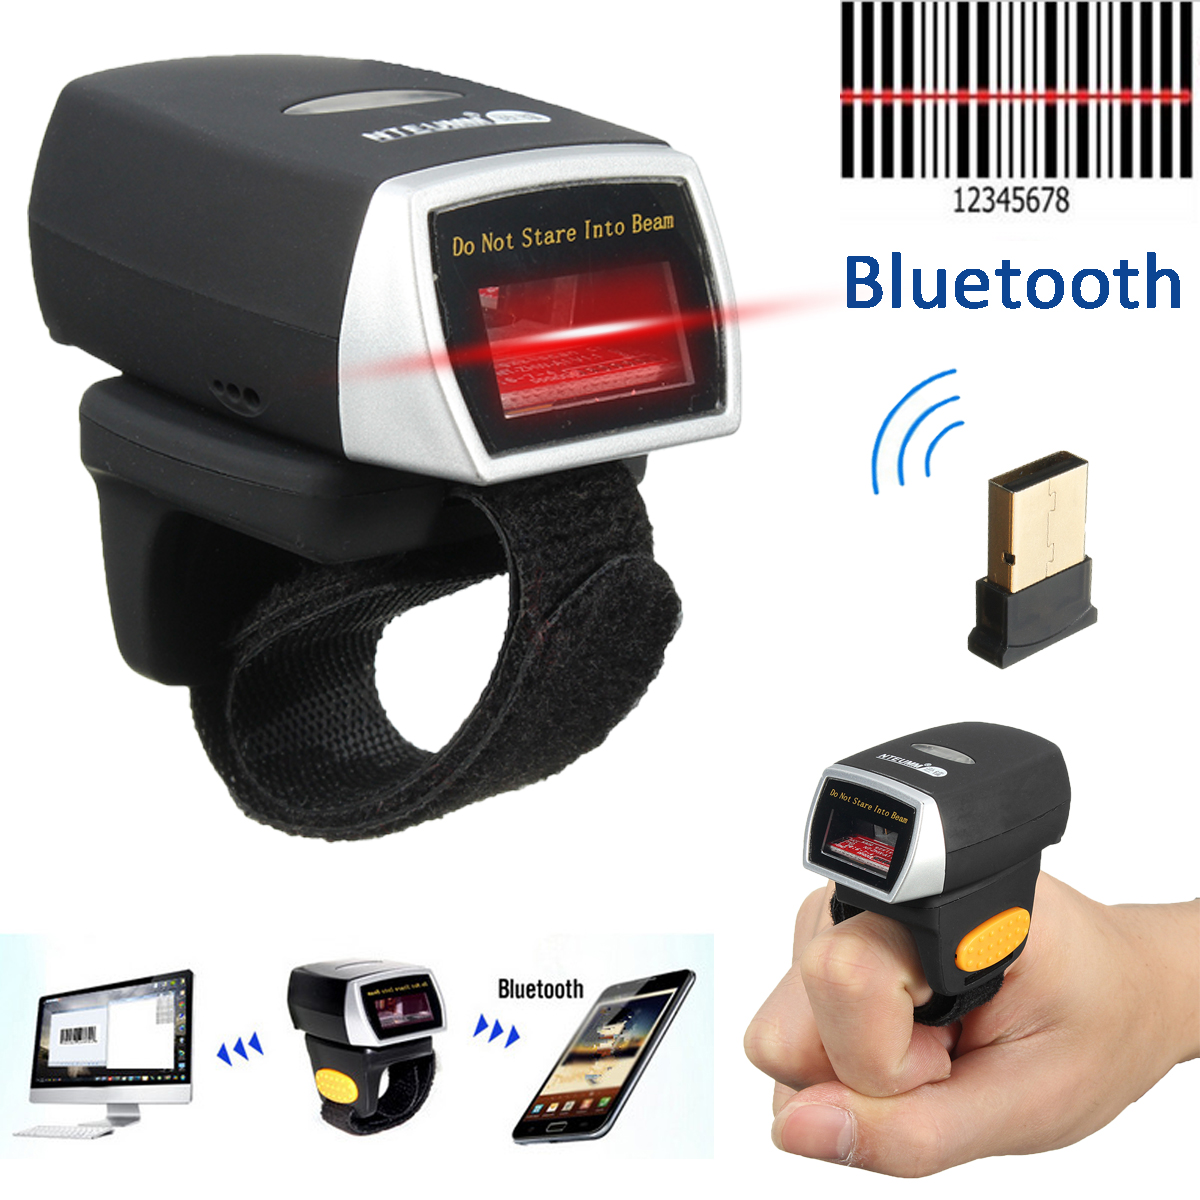 Mini Bluetooth Scanner Barcode Reader Laser Weirless Scanner Wearable Ring Bar Code Scanner 1D Reader Scan for Phone PC Tablet 2016 men s brand naviforce fashion sports watches men 3d dial quartz watch man nylon strap army military wrist watches